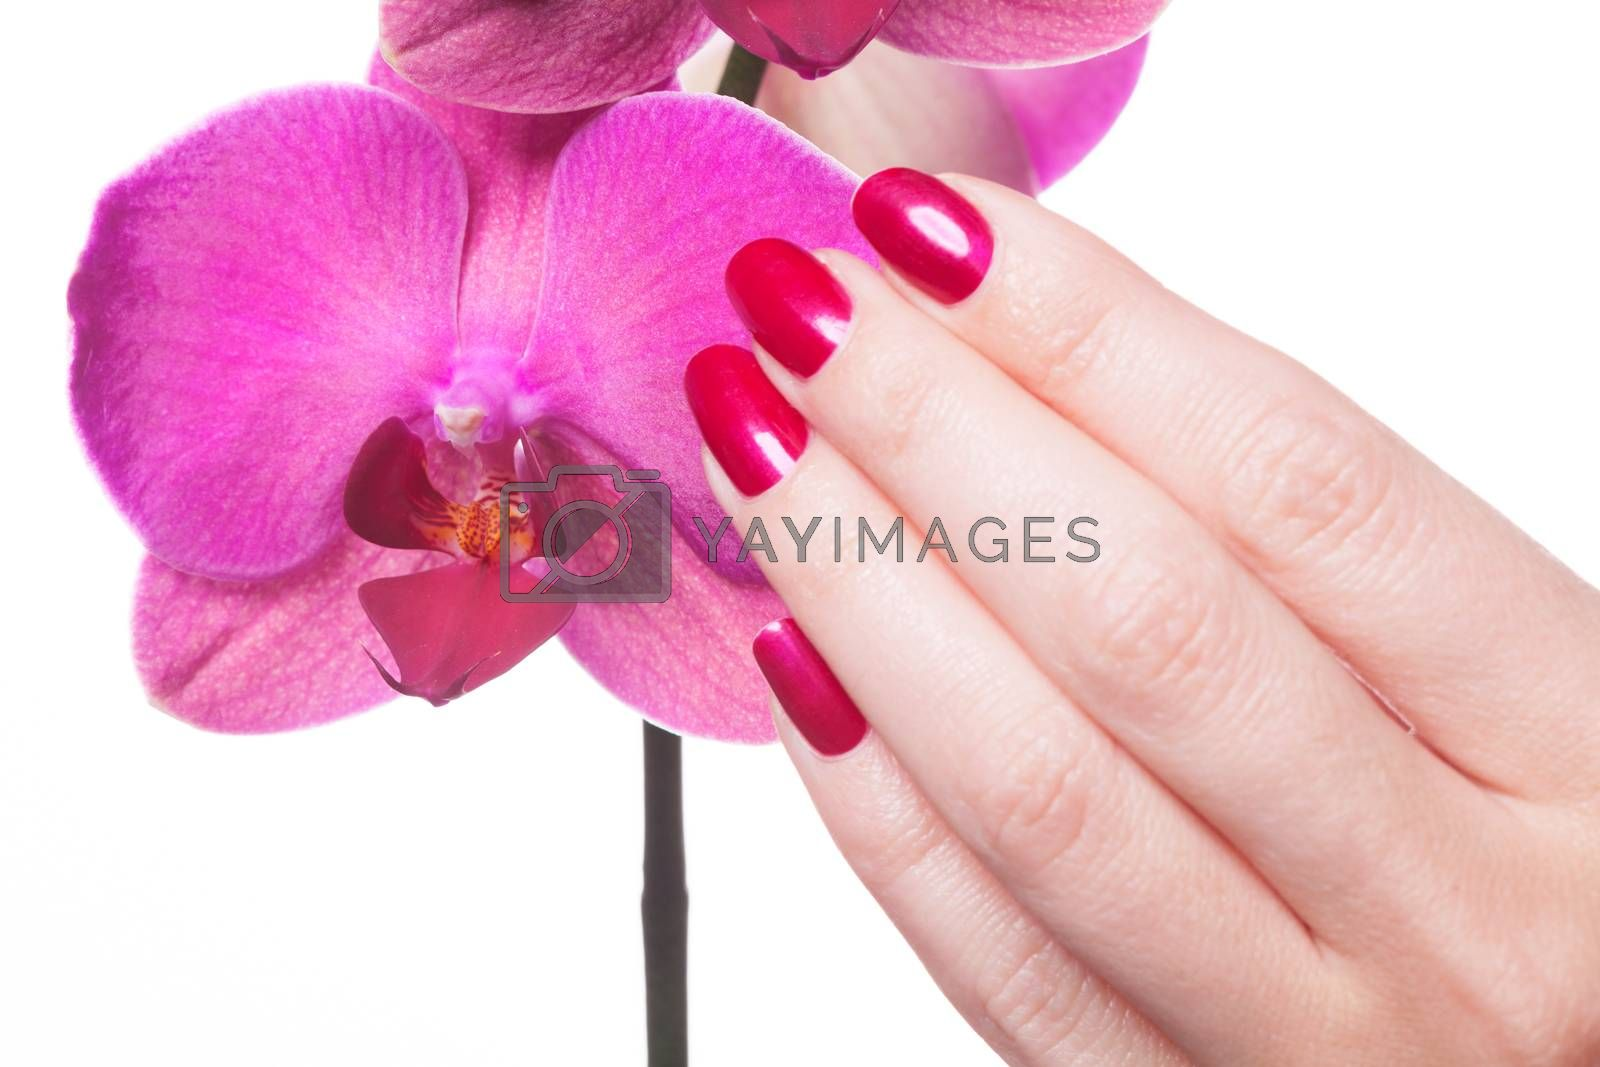 Manicured nails painted a deep red caress dark pink flower pedals against white background